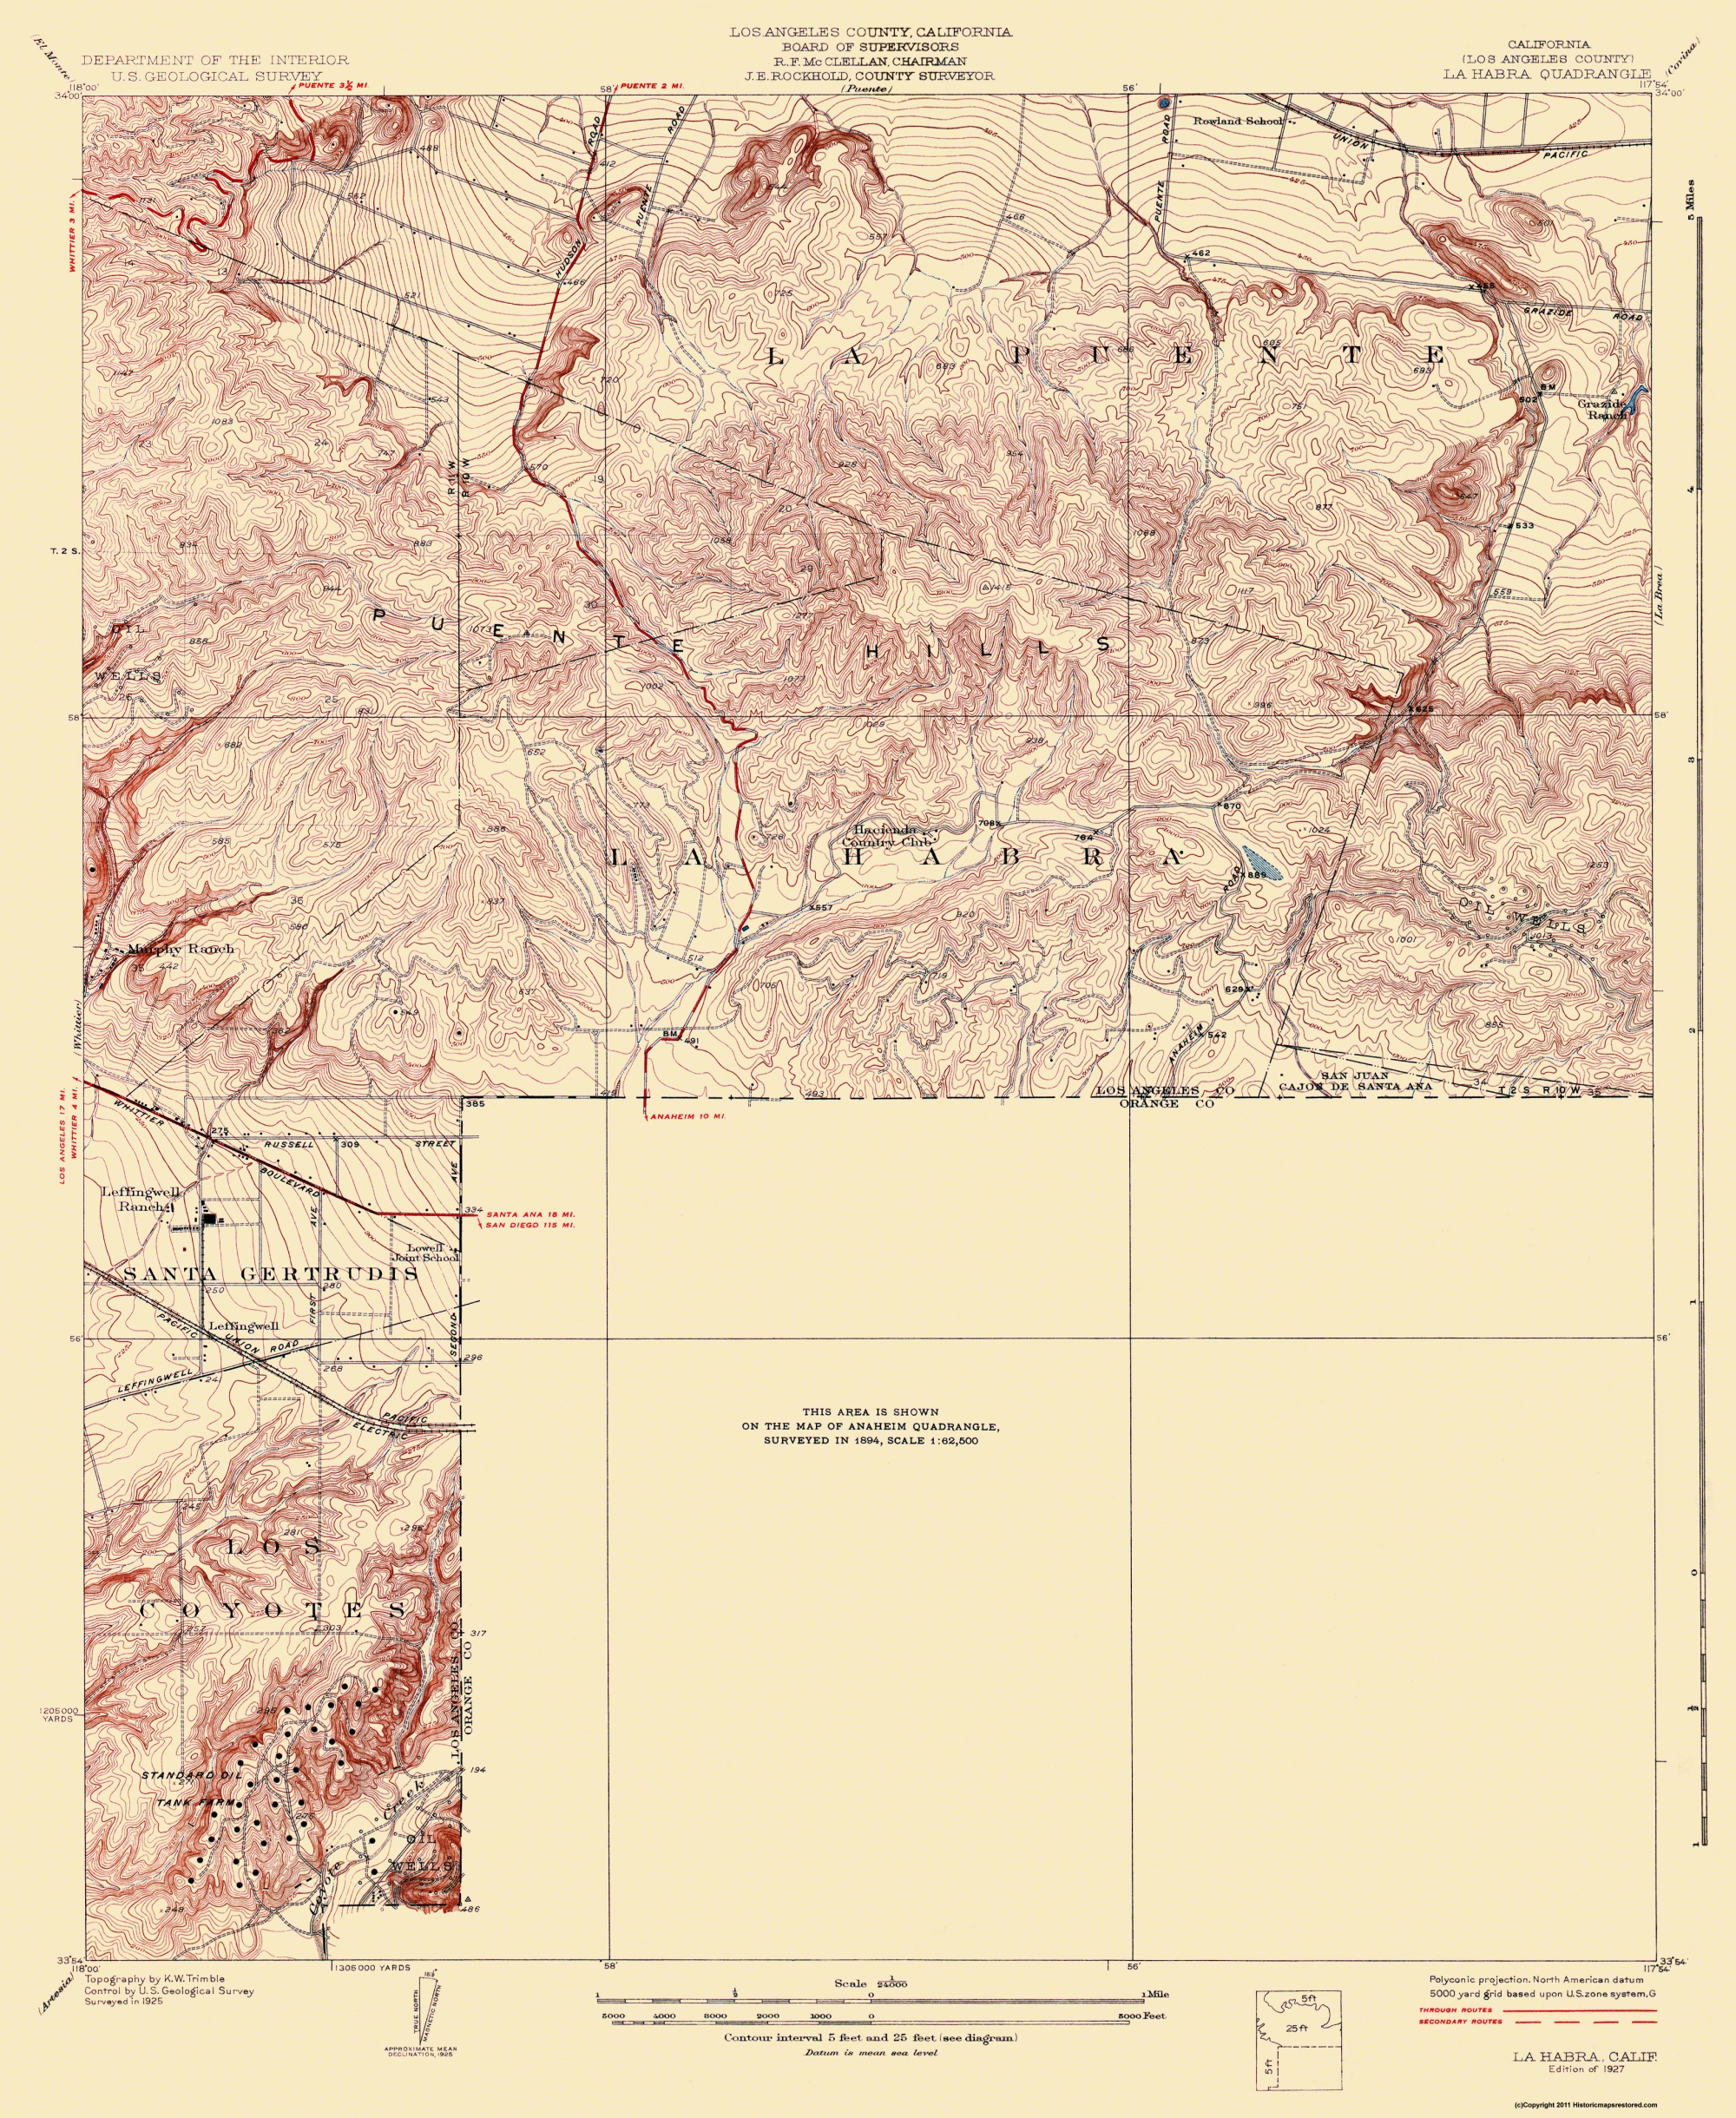 Old Topographical Map La Habra California 1927